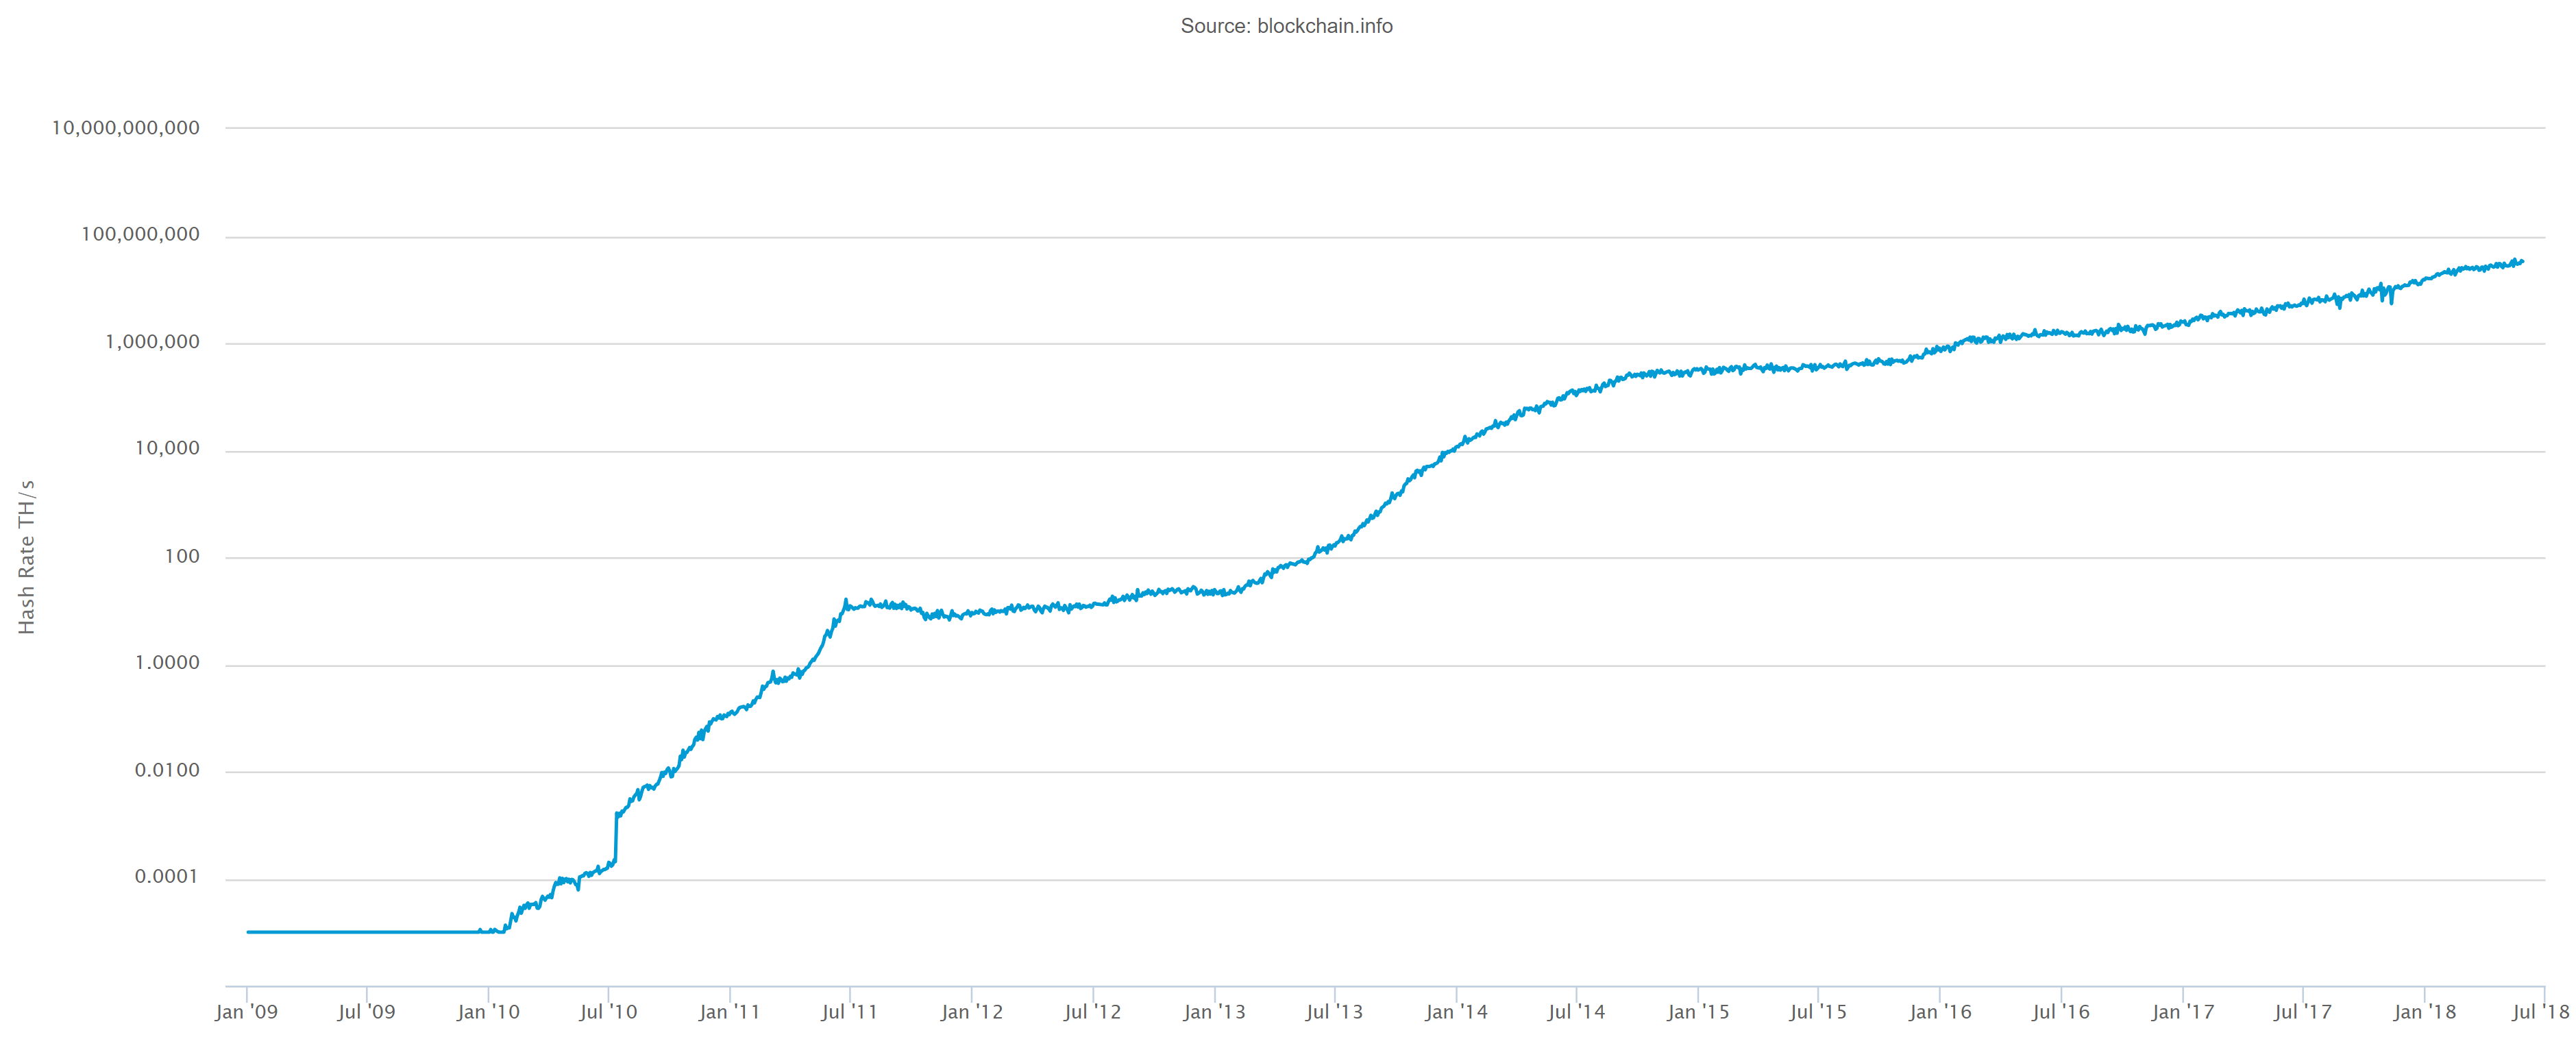 Bitcoin Hash Rate In Log Scale